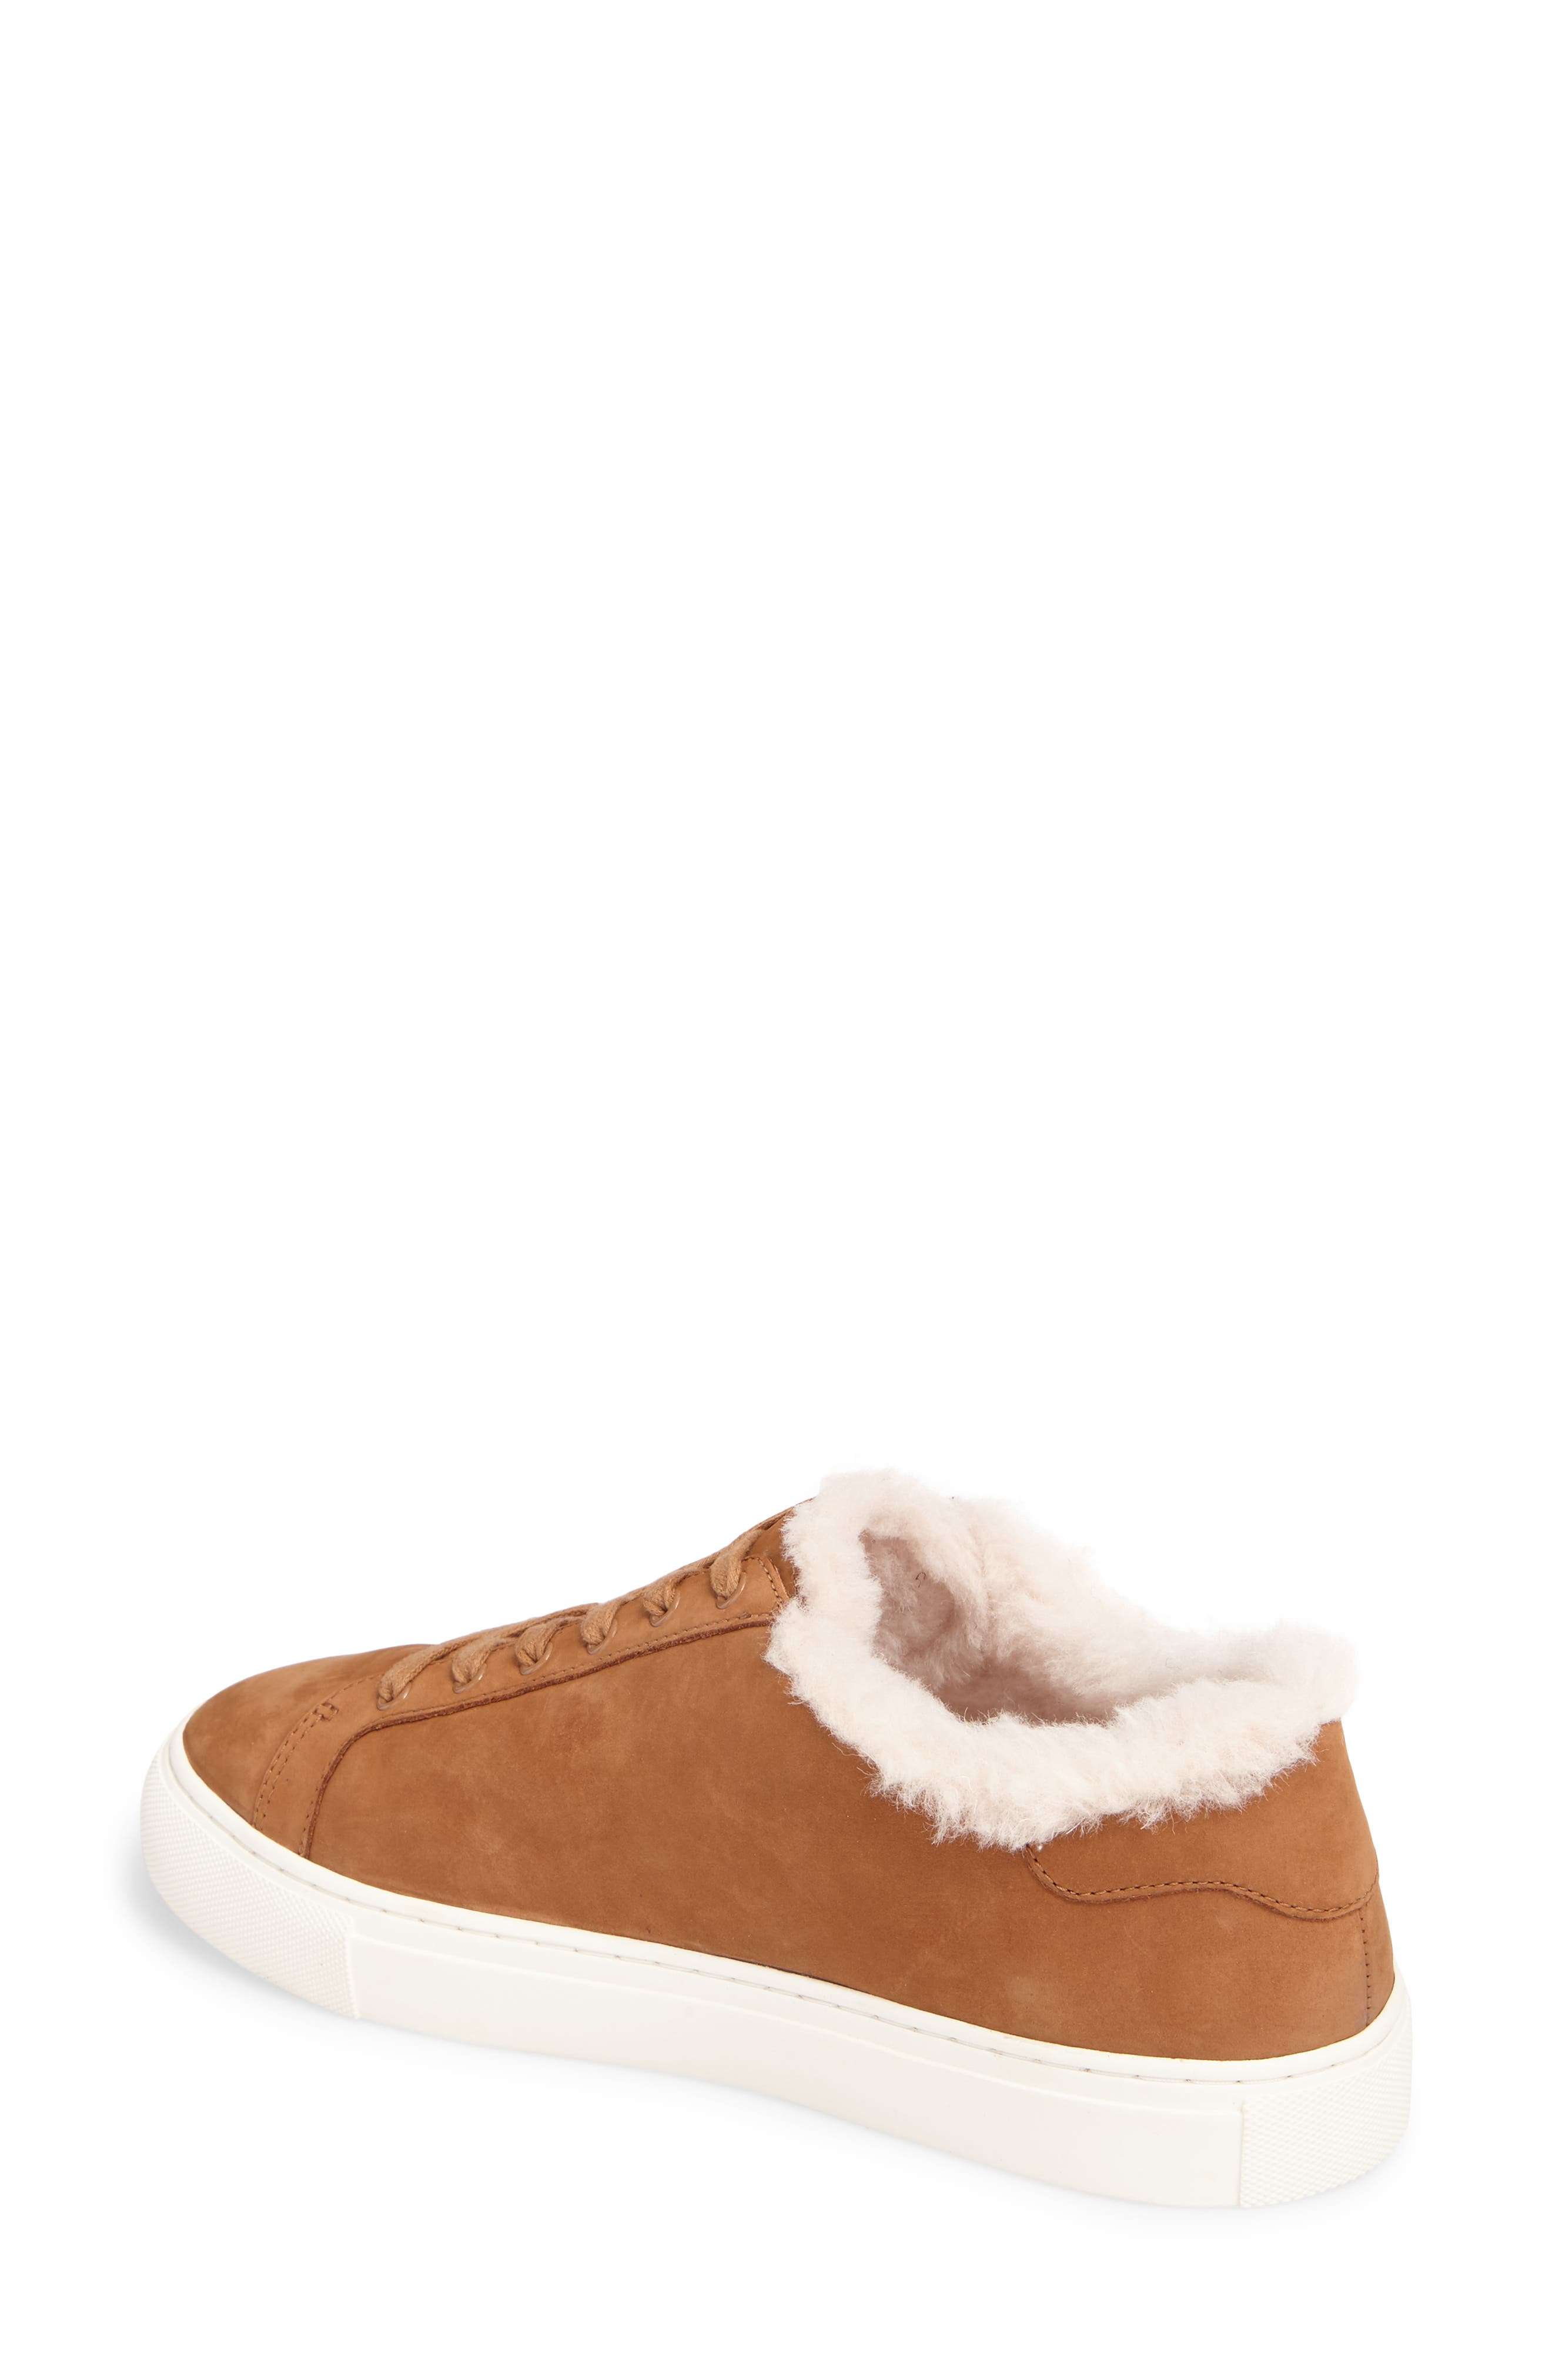 Lawrence Genuine Shearling Lined Sneaker,                             Alternate thumbnail 4, color,